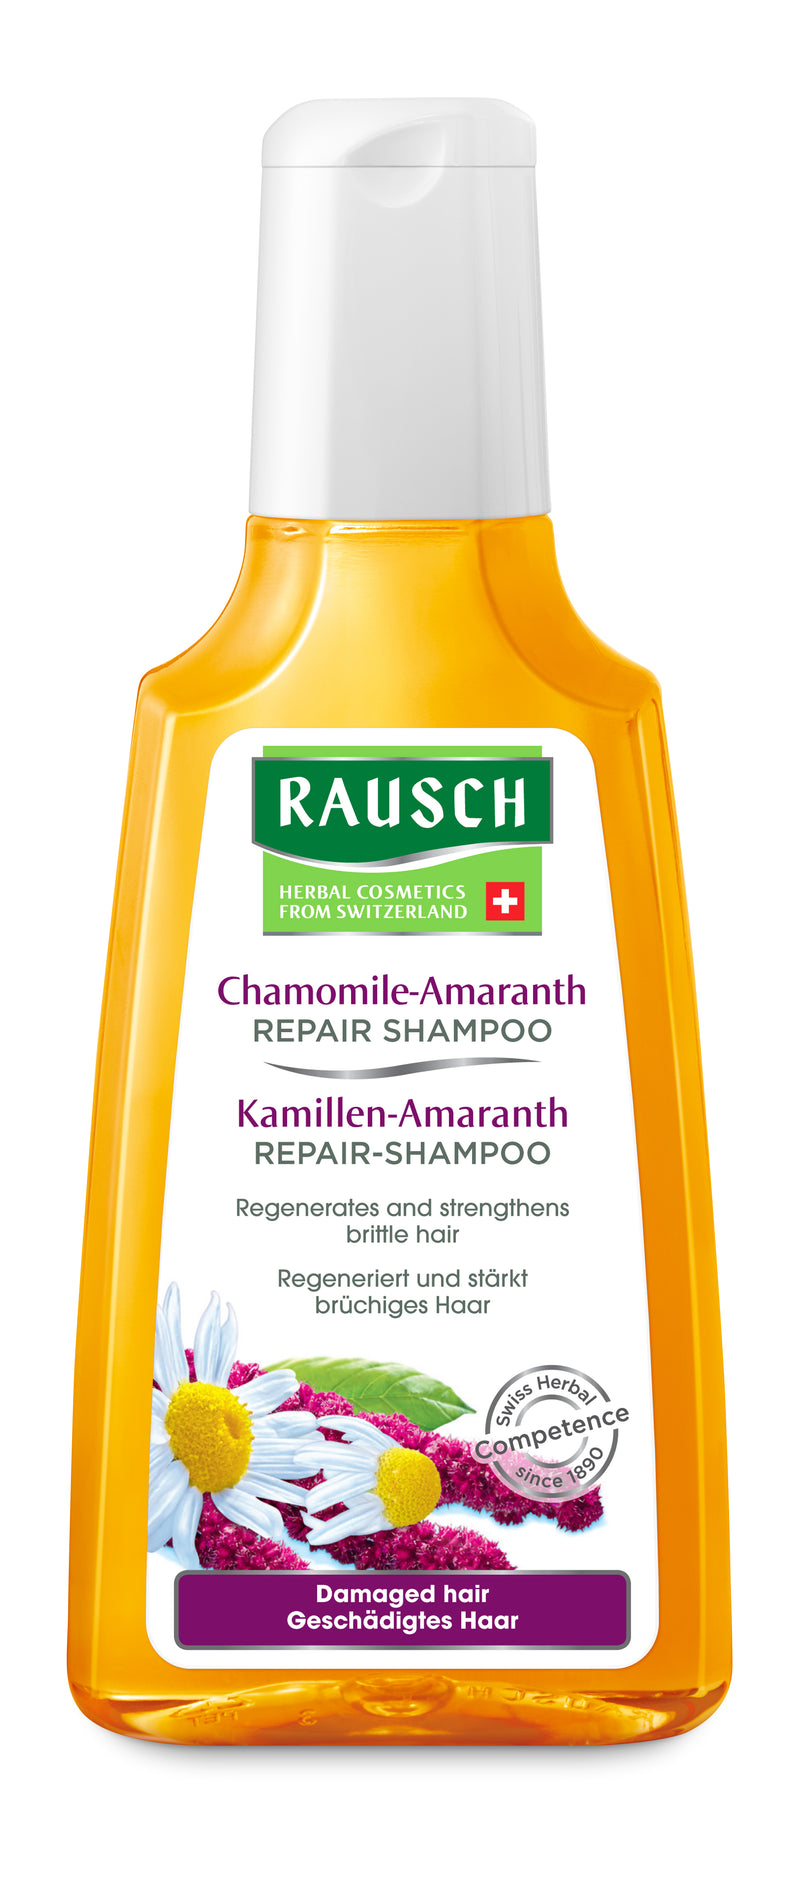 RAUSCH Chamomile-Amaranth Repair Shampoo For Damaged Hair